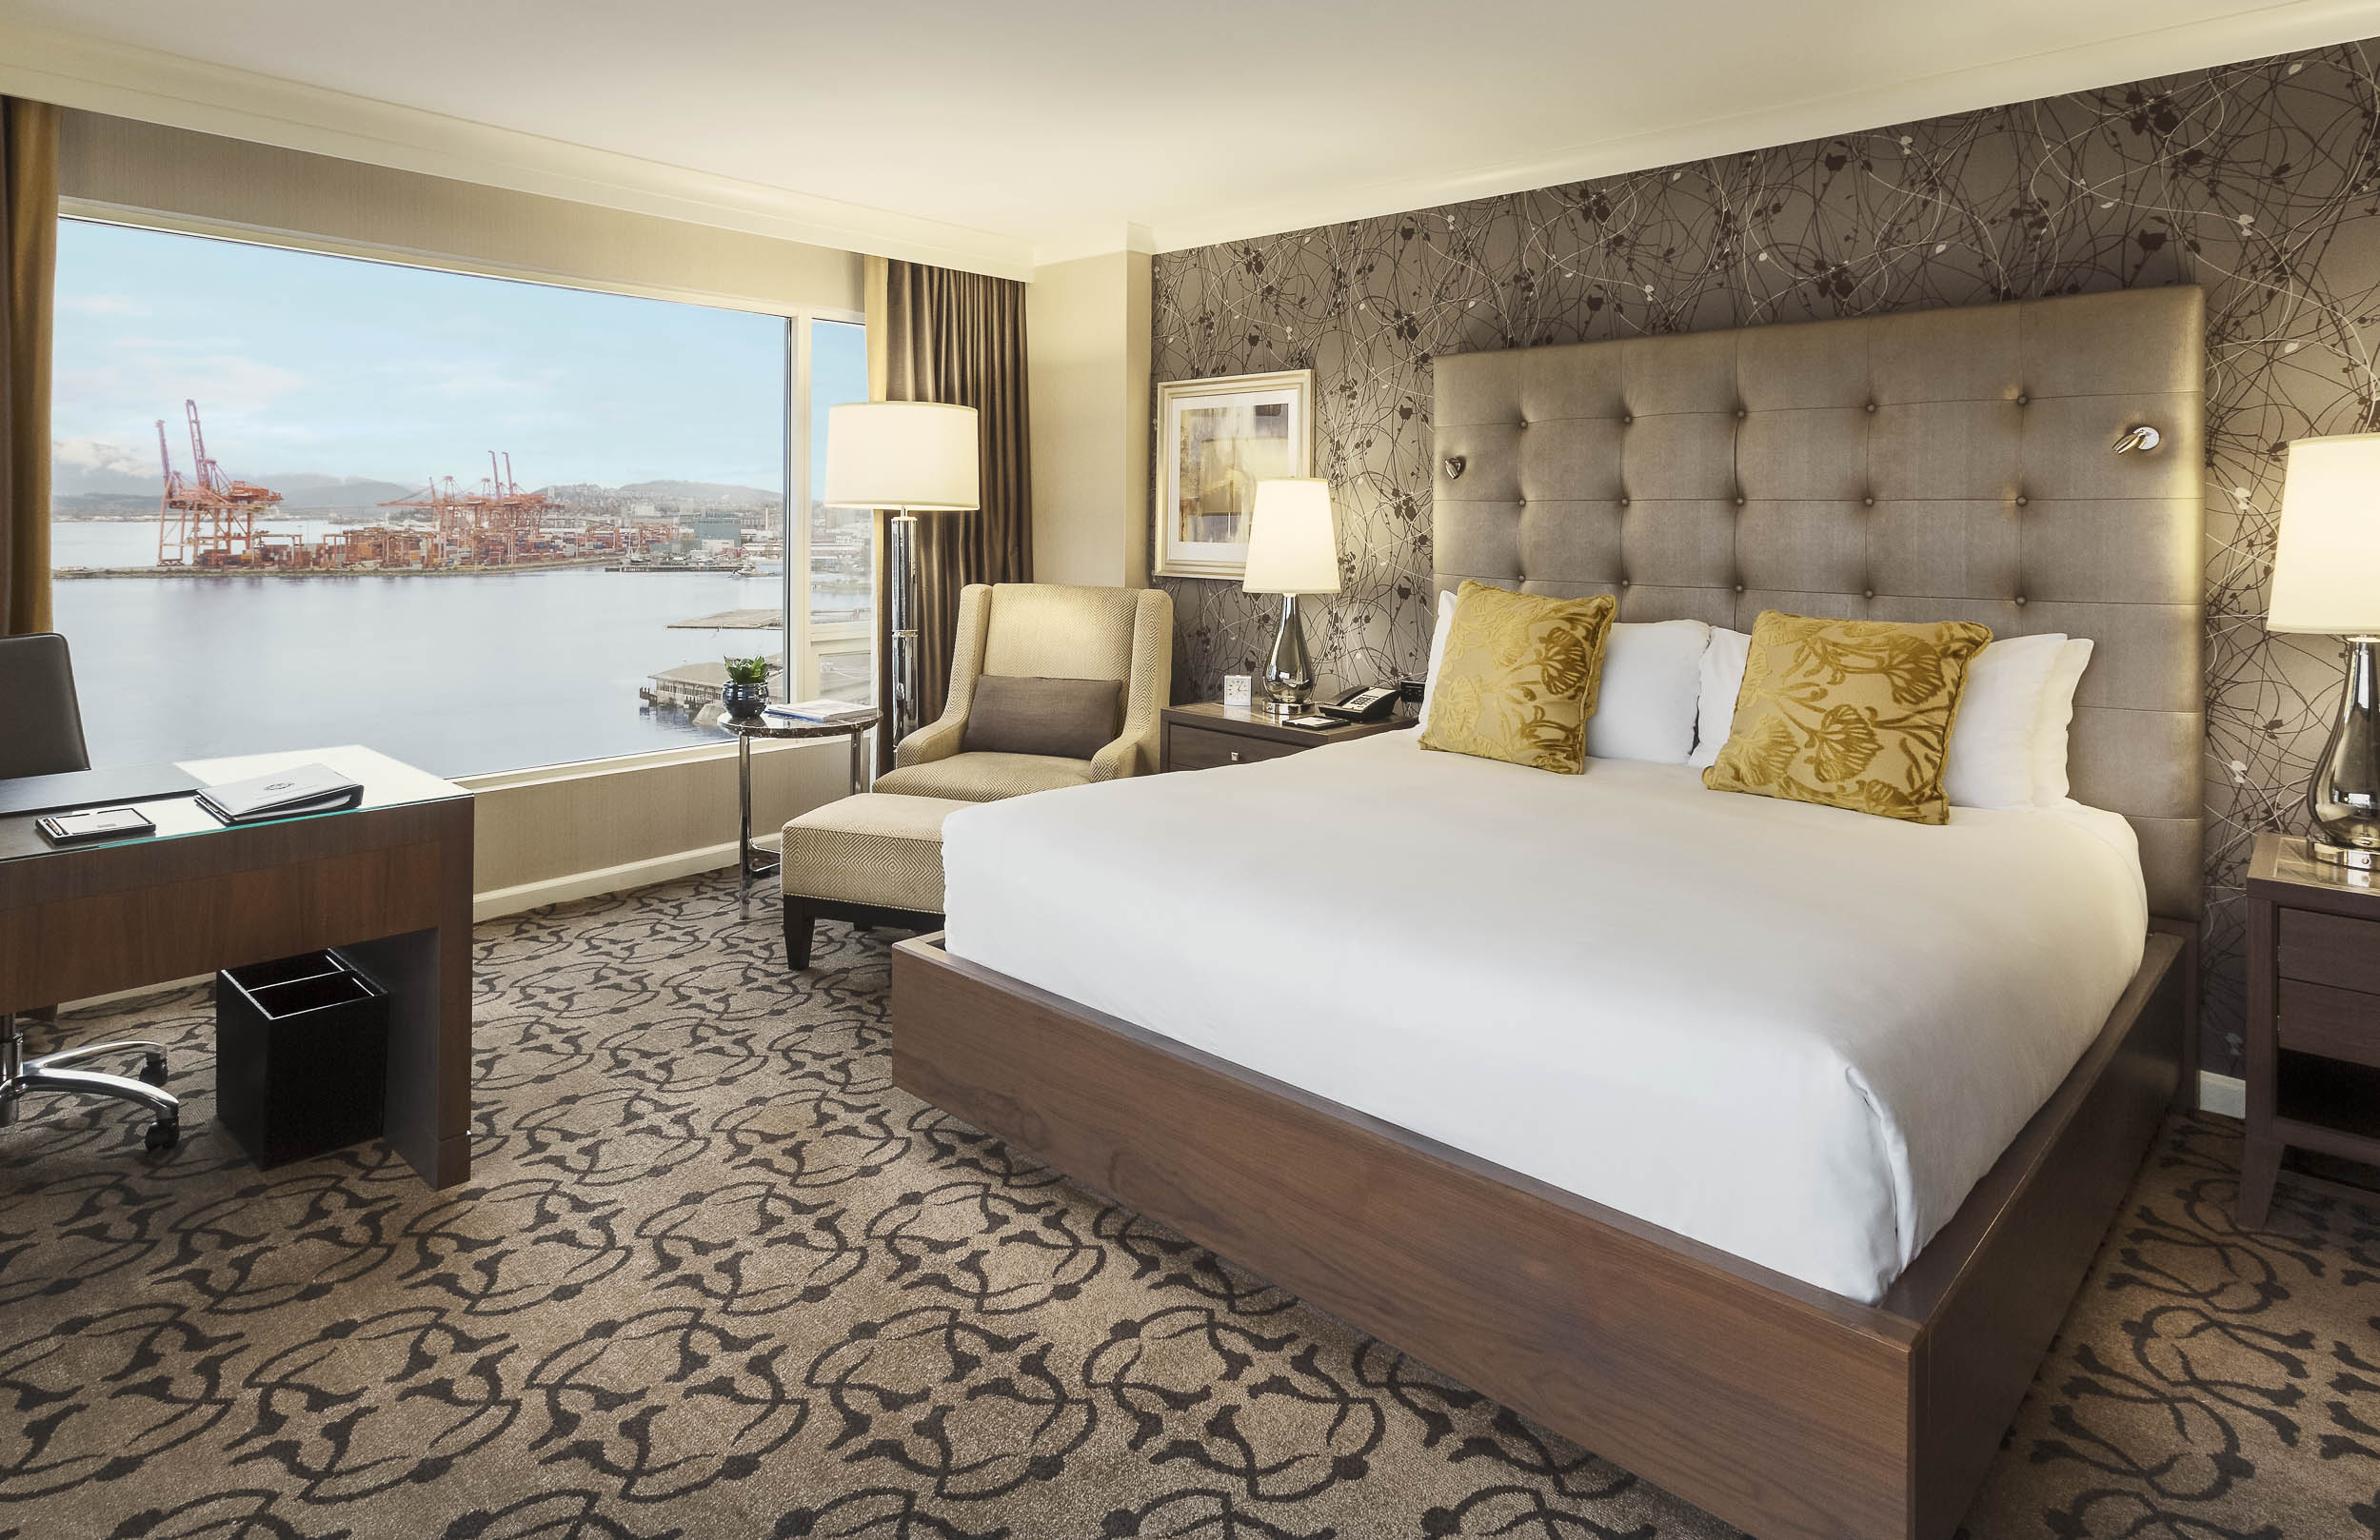 Fairmont_WaterFront_Room-after.jpg